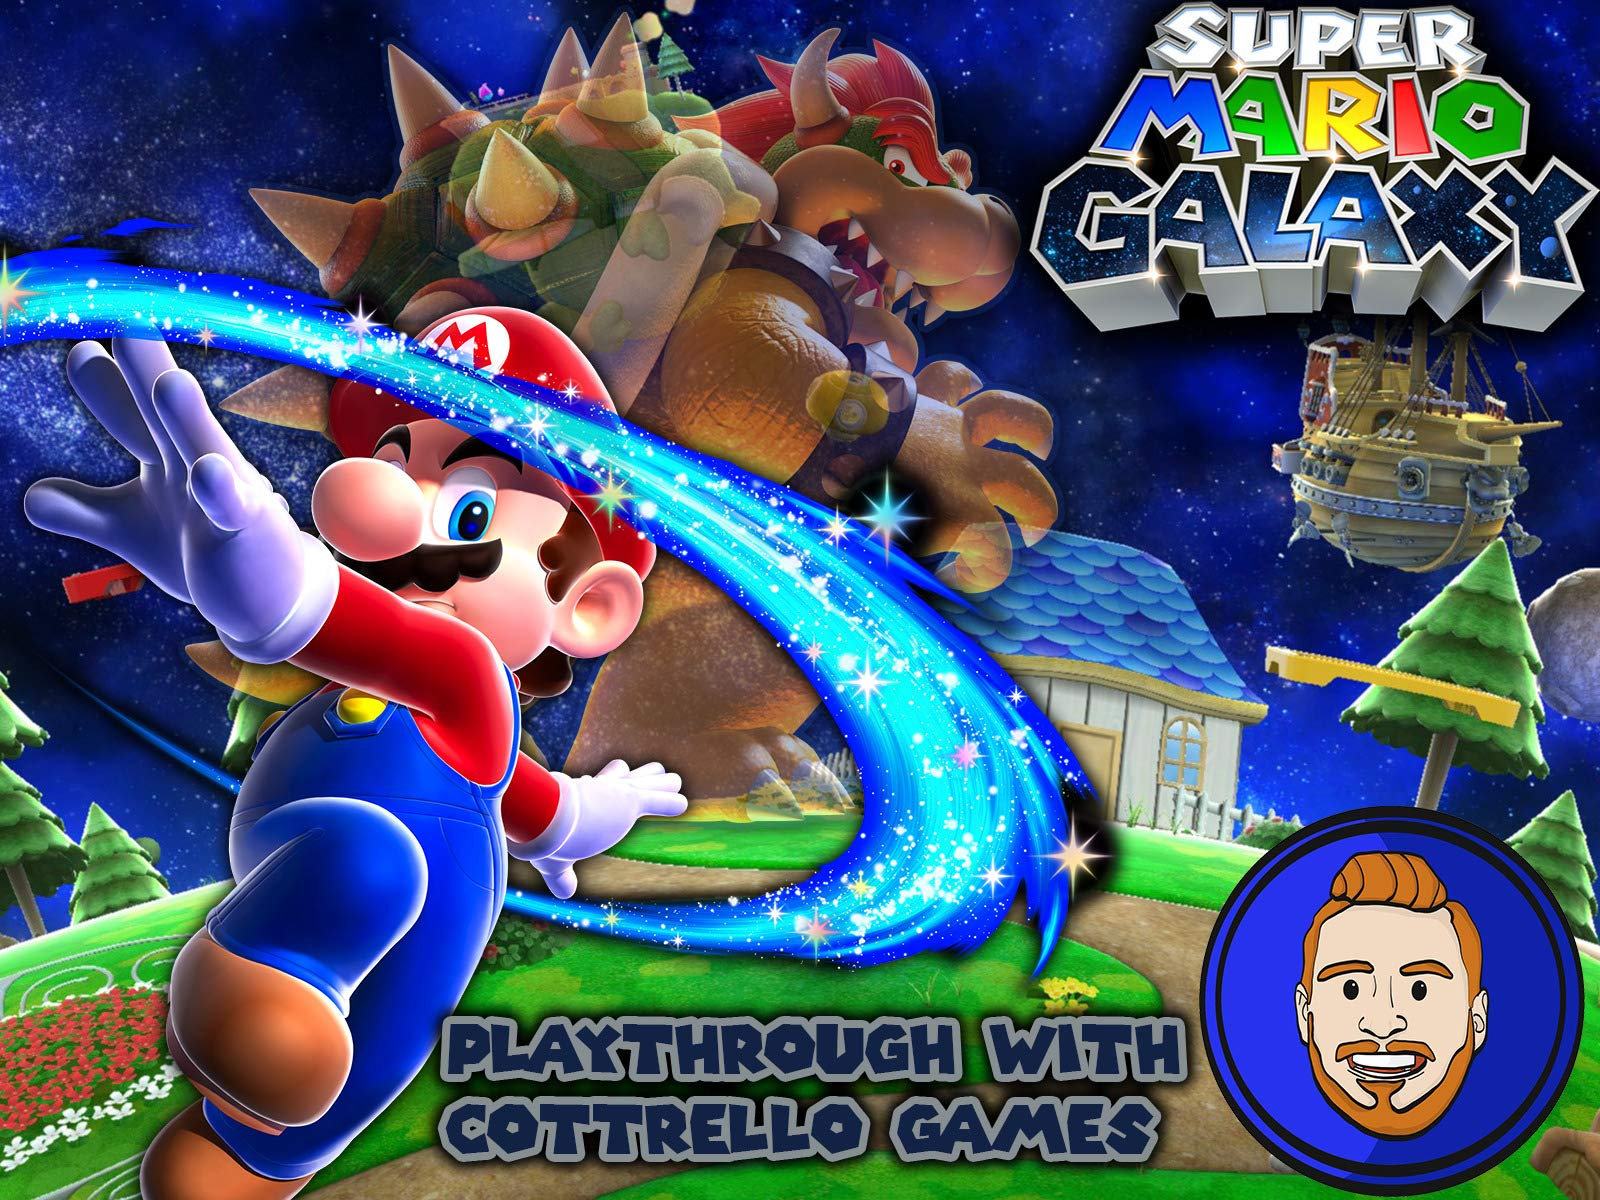 Super Mario Galaxy Playthrough with Cottrello Games